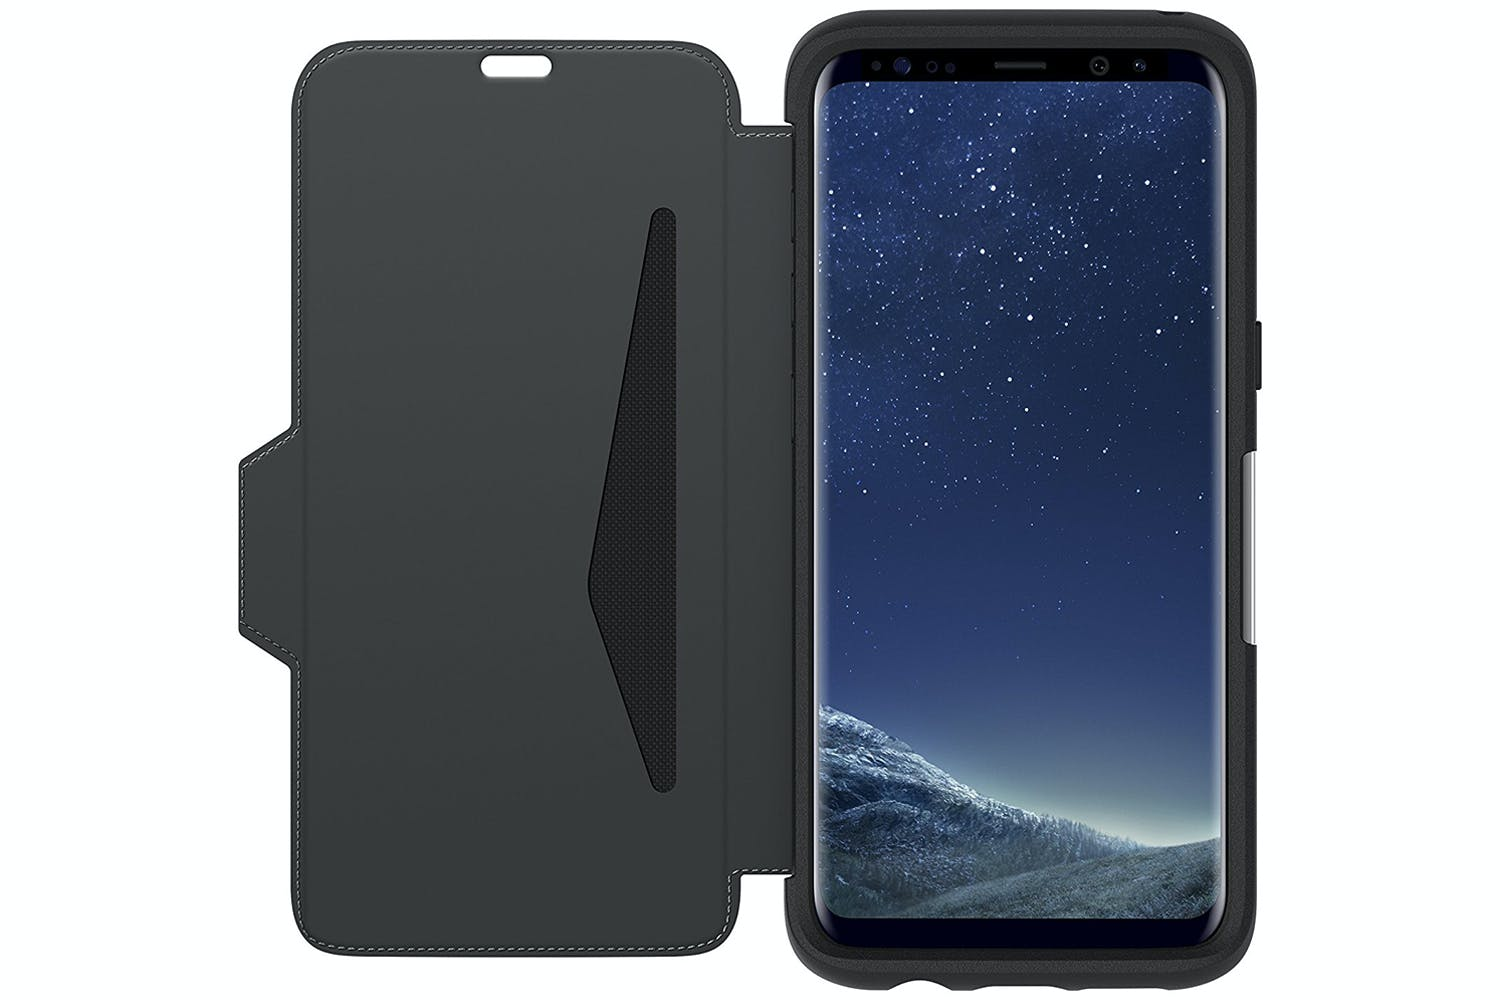 huge selection of 0e706 ee6a3 Otterbox Galaxy S8 Strada Series Folio Case | Onyx